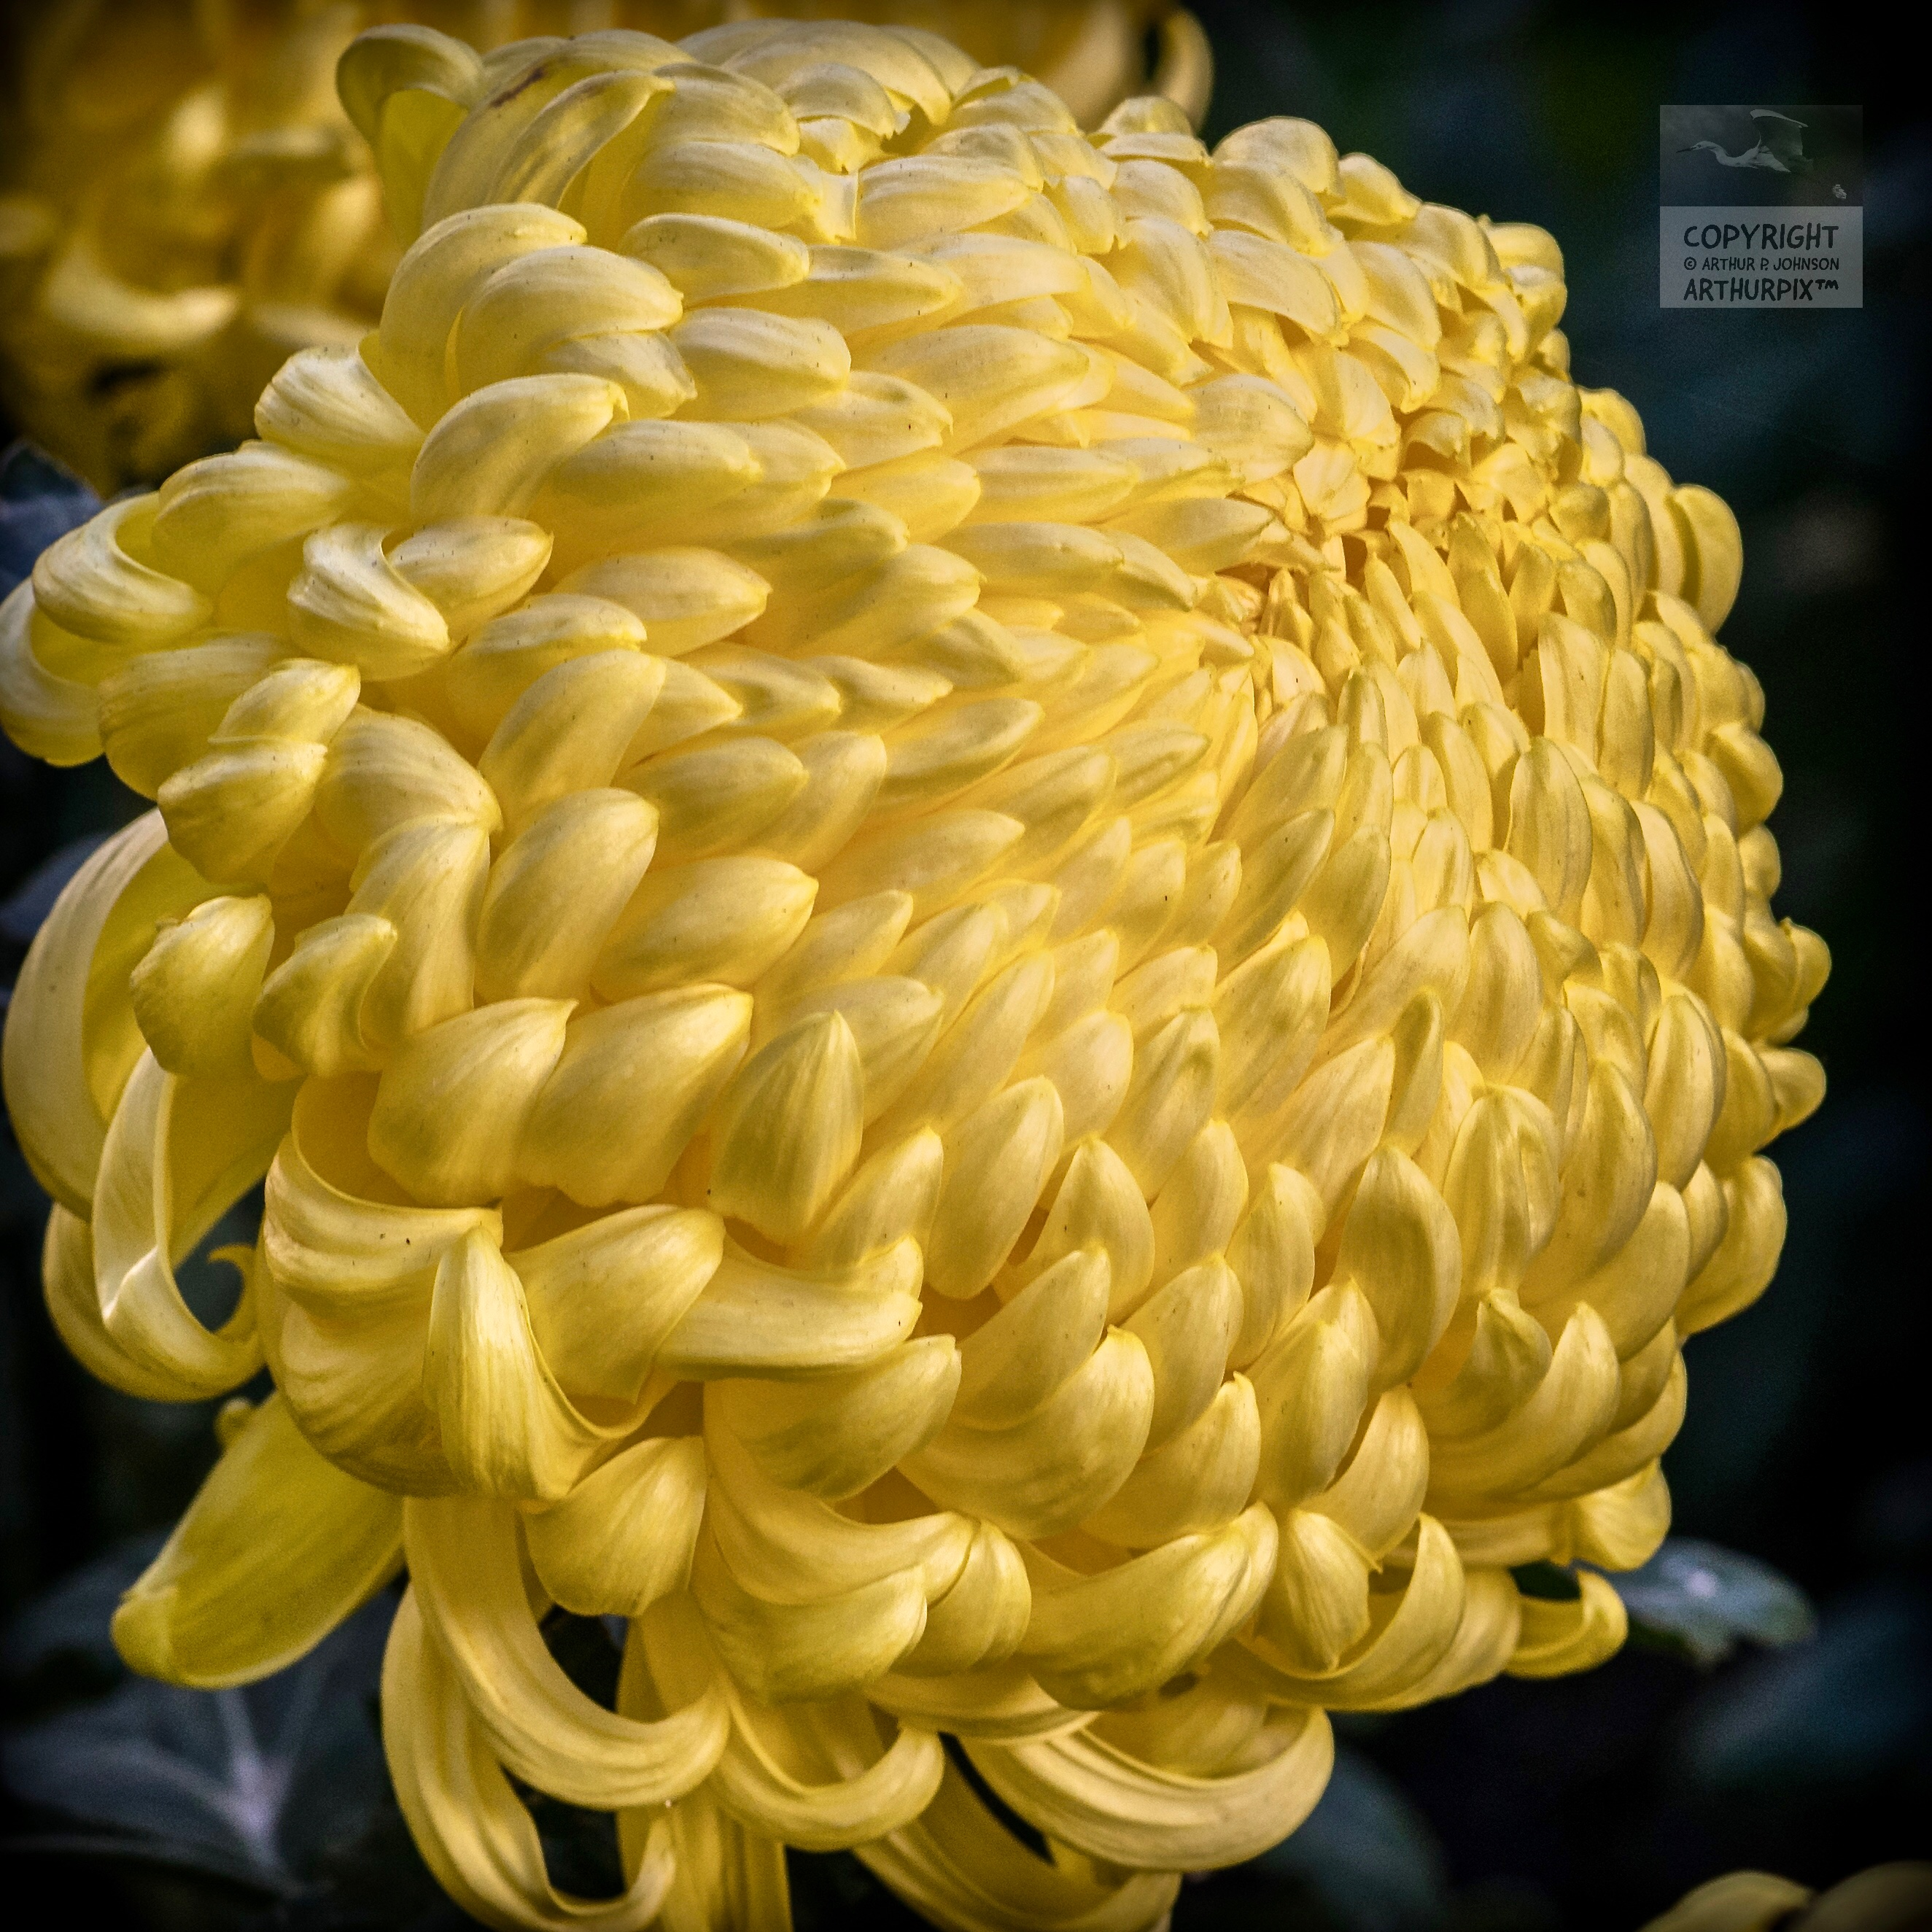 Golden Globe Chrysanthemum, November 2017